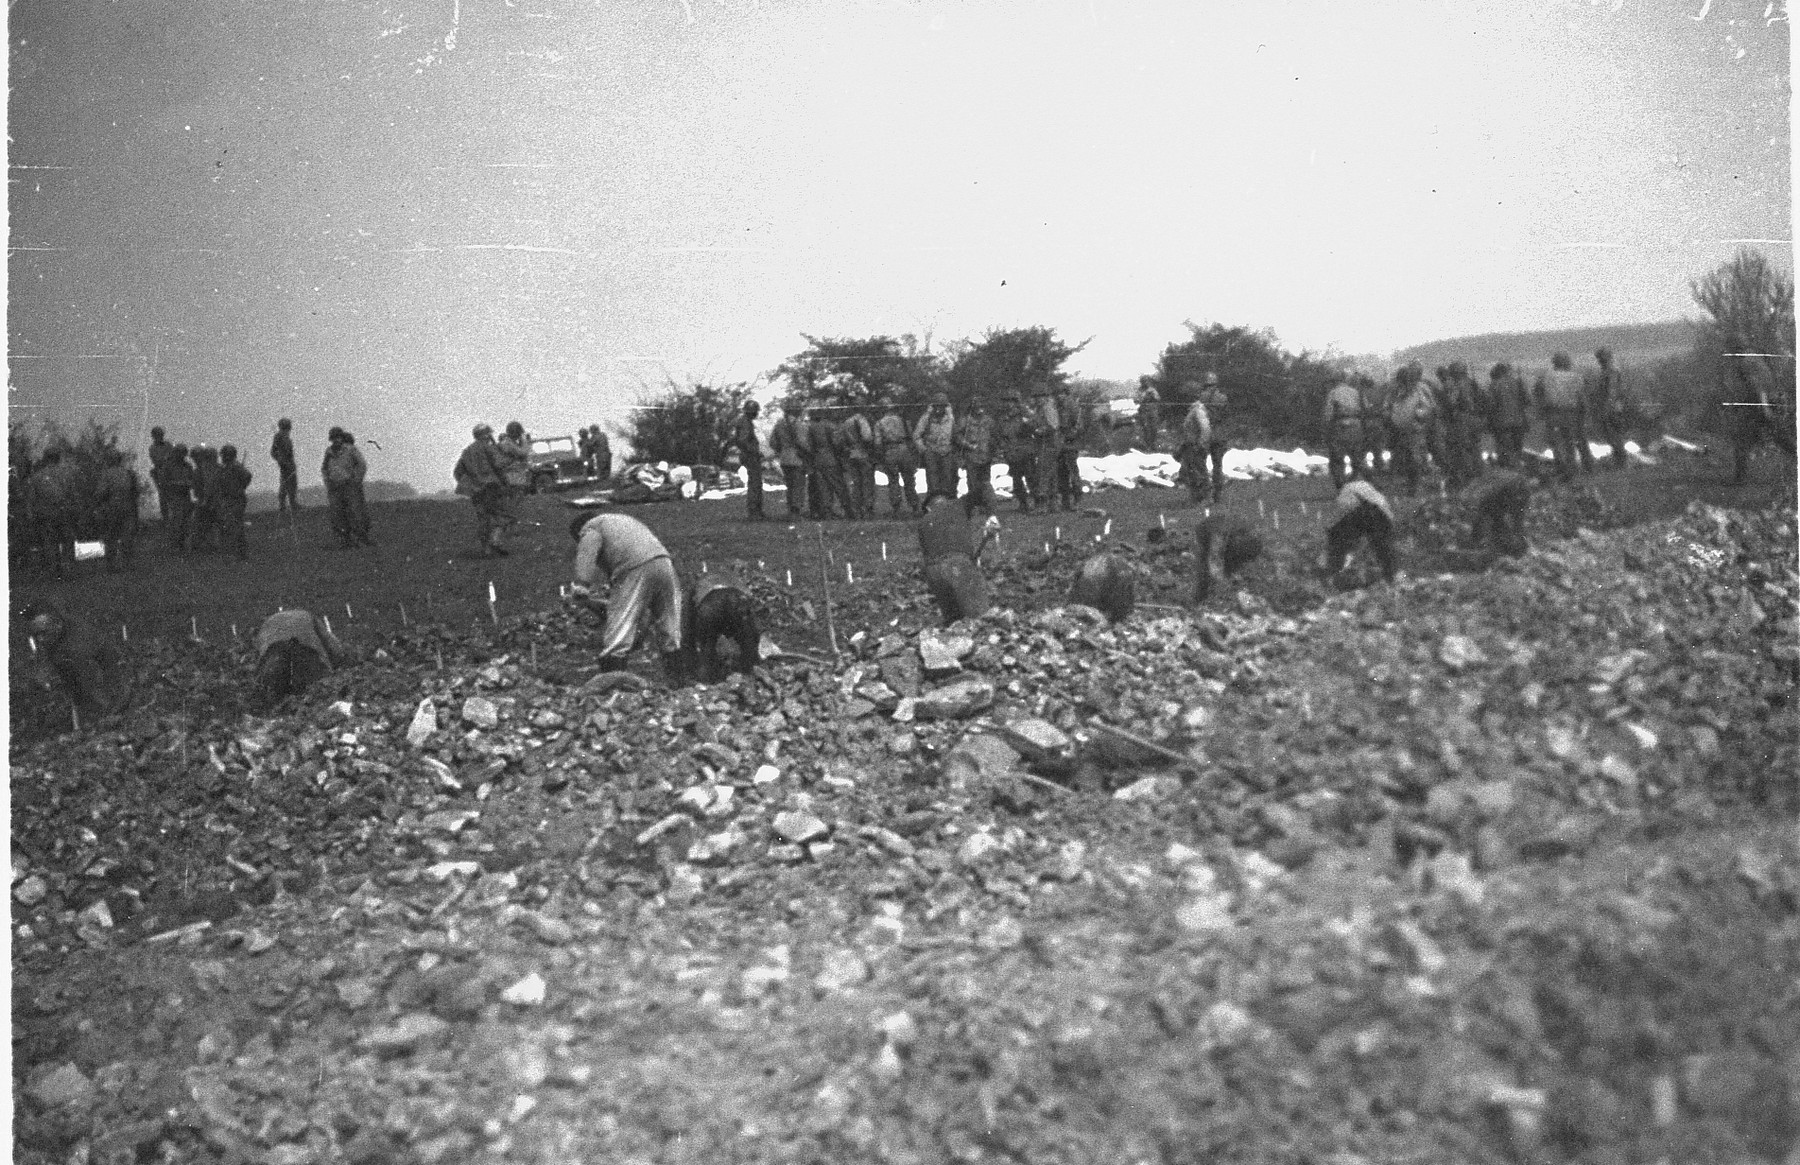 German civilians conscripted from nearby towns dig graves for prisoners killed in the Ohrdruf concentration camp.